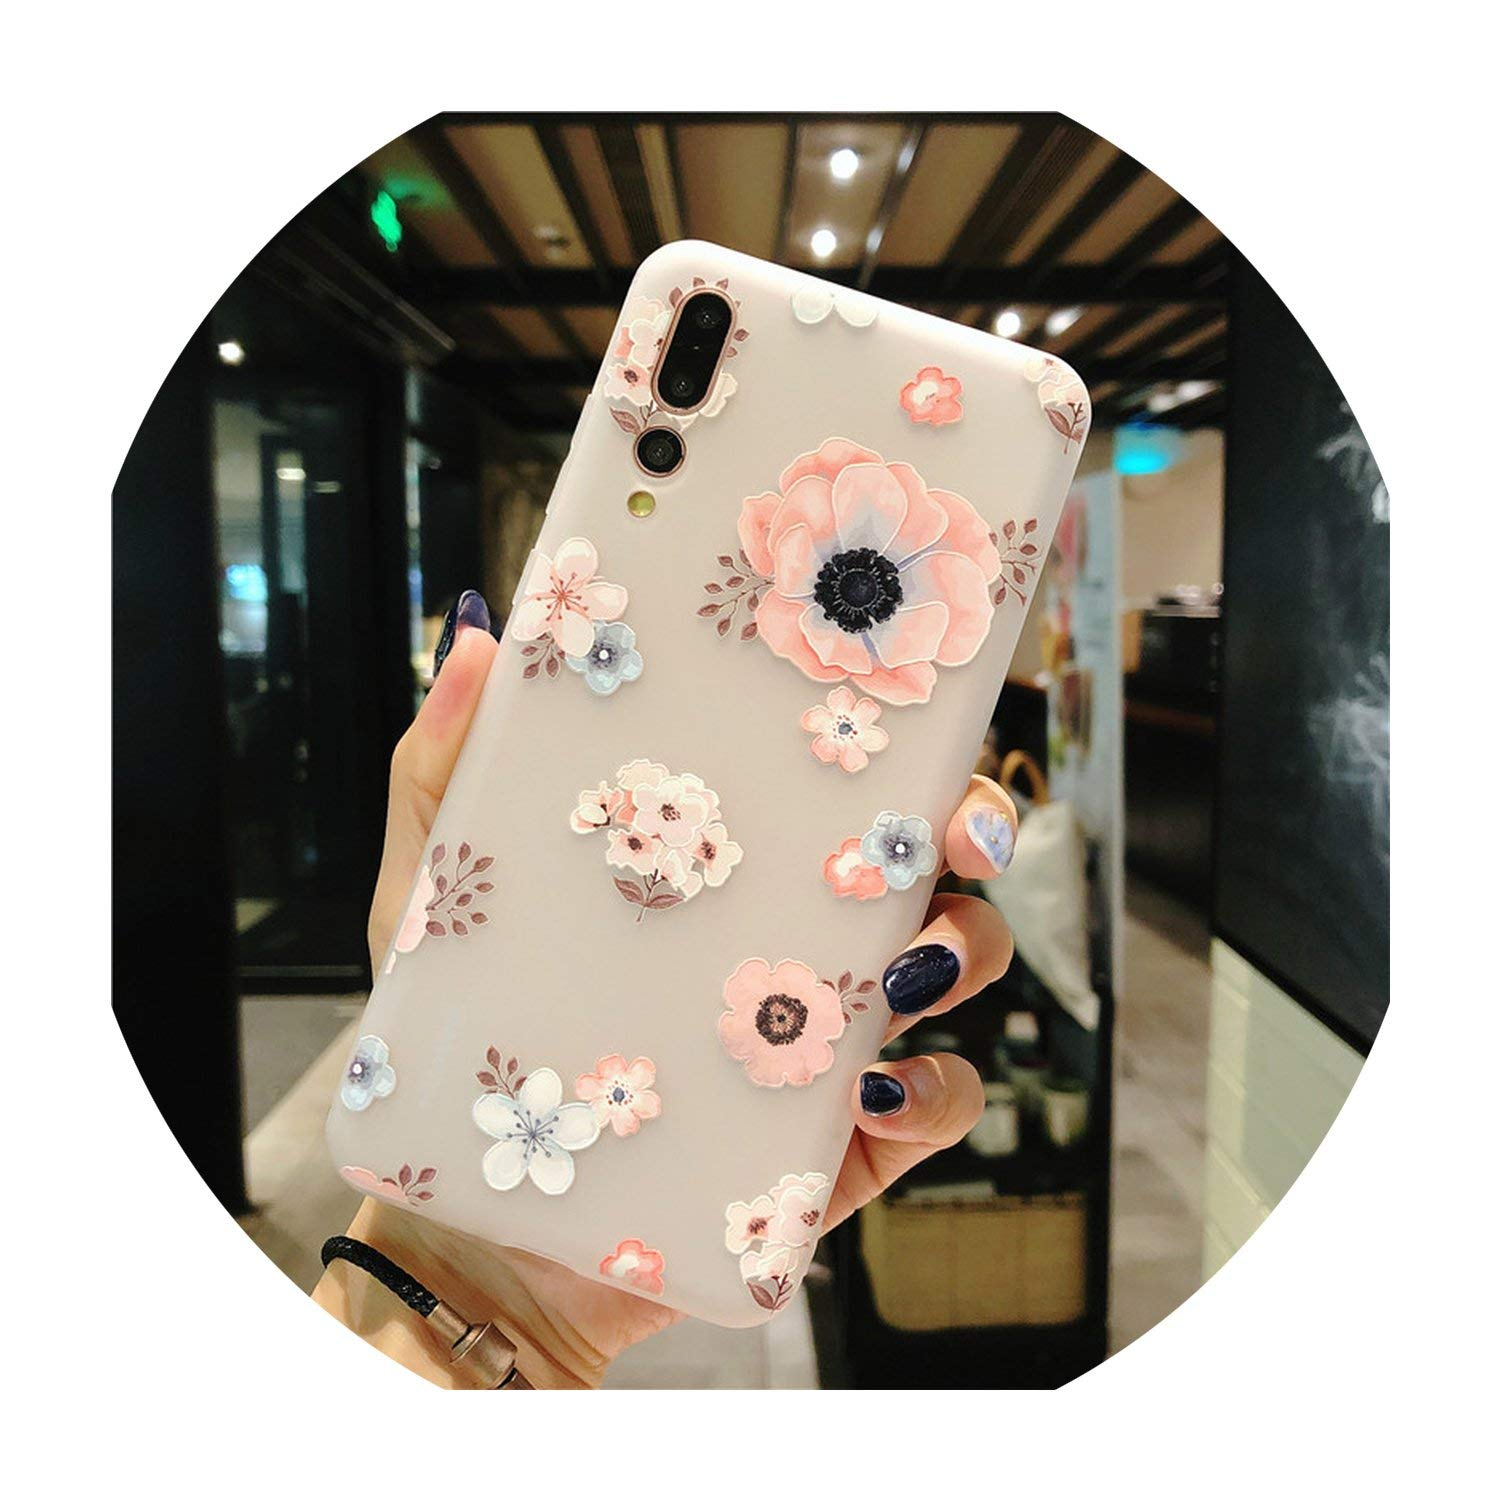 Amazon.com: P30 P30 Pro P30 Lite TPU Flower Phone Case ...